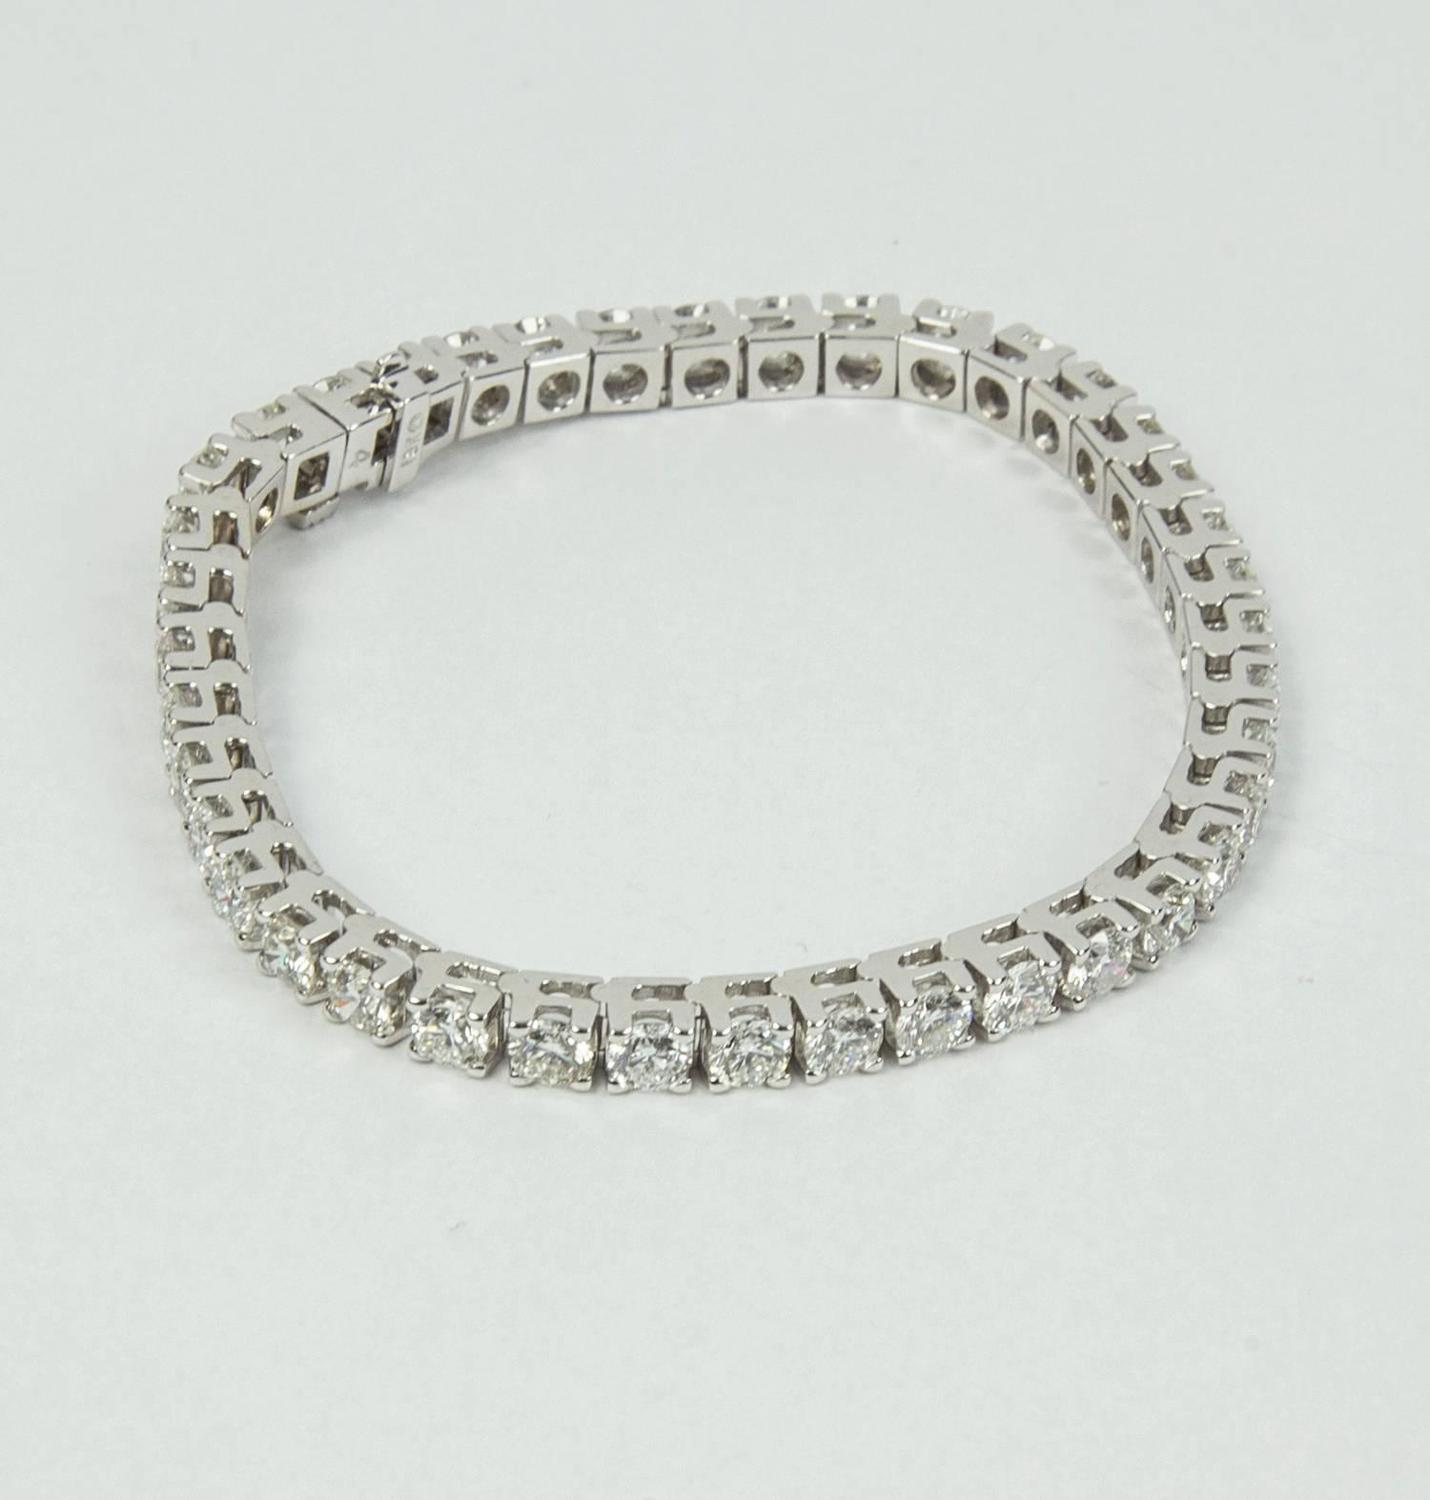 10 70 Carat Diamond Gold Line Tennis Bracelet For Sale At